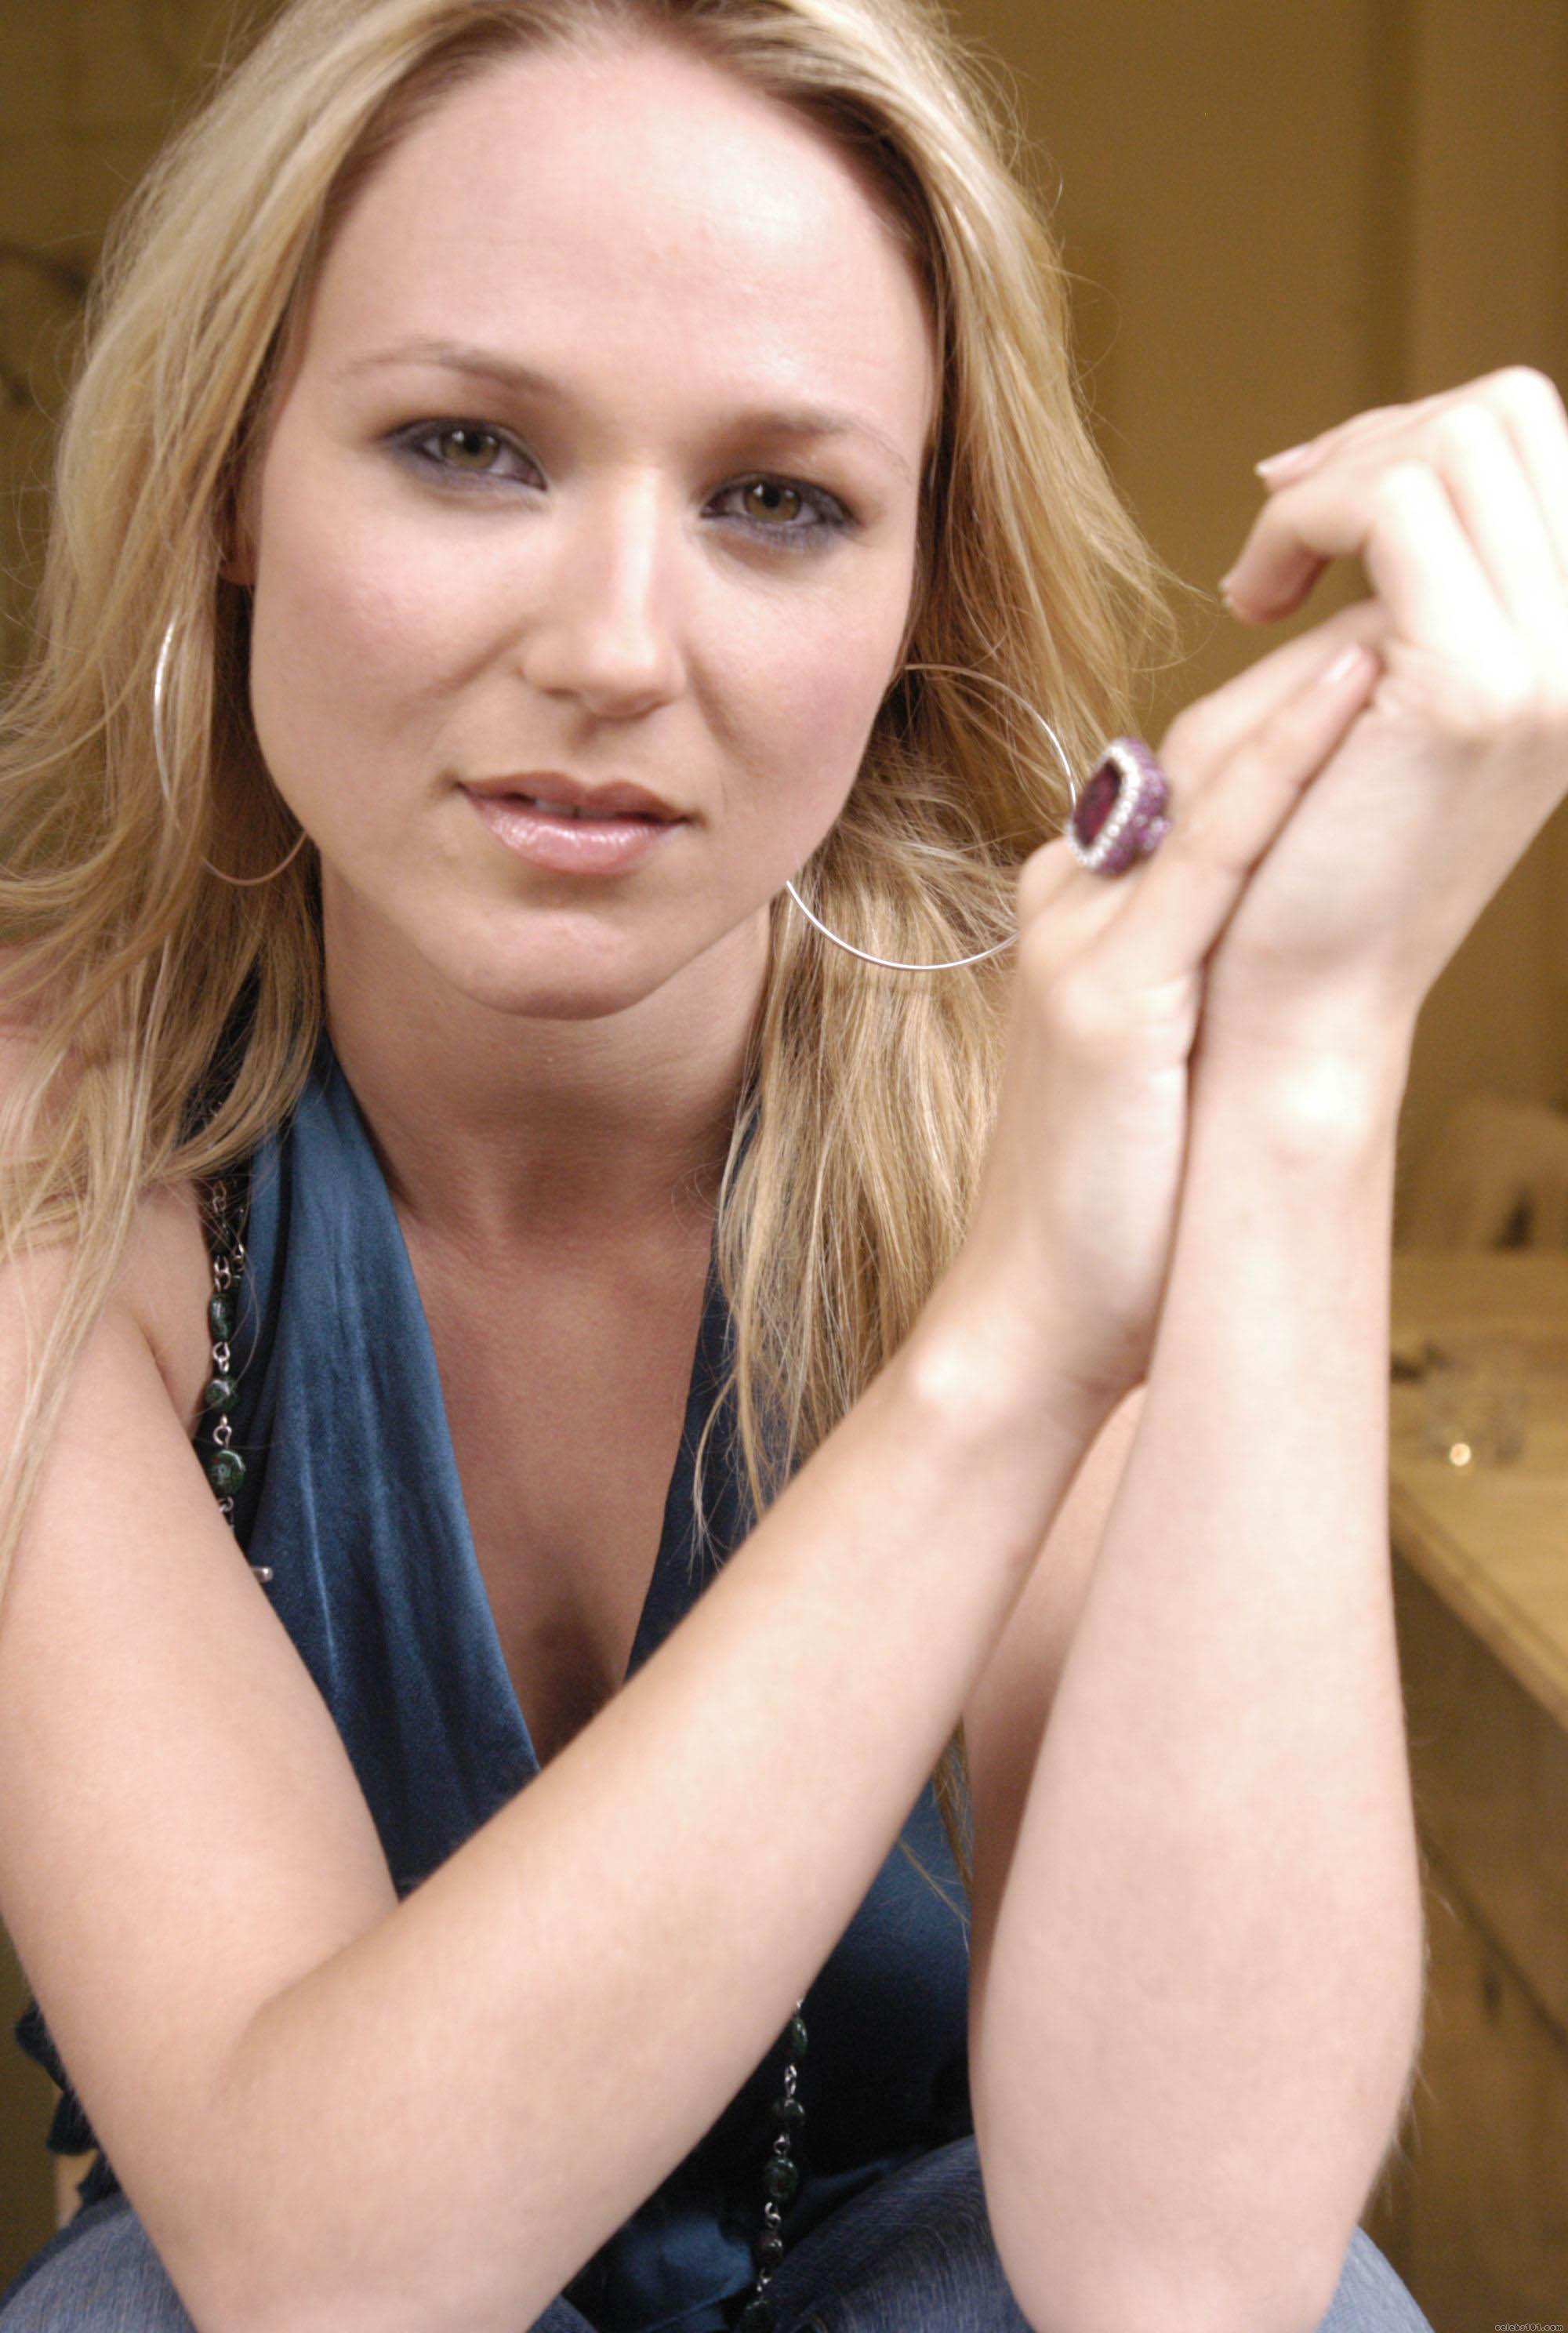 Jewel Kilcher Photos